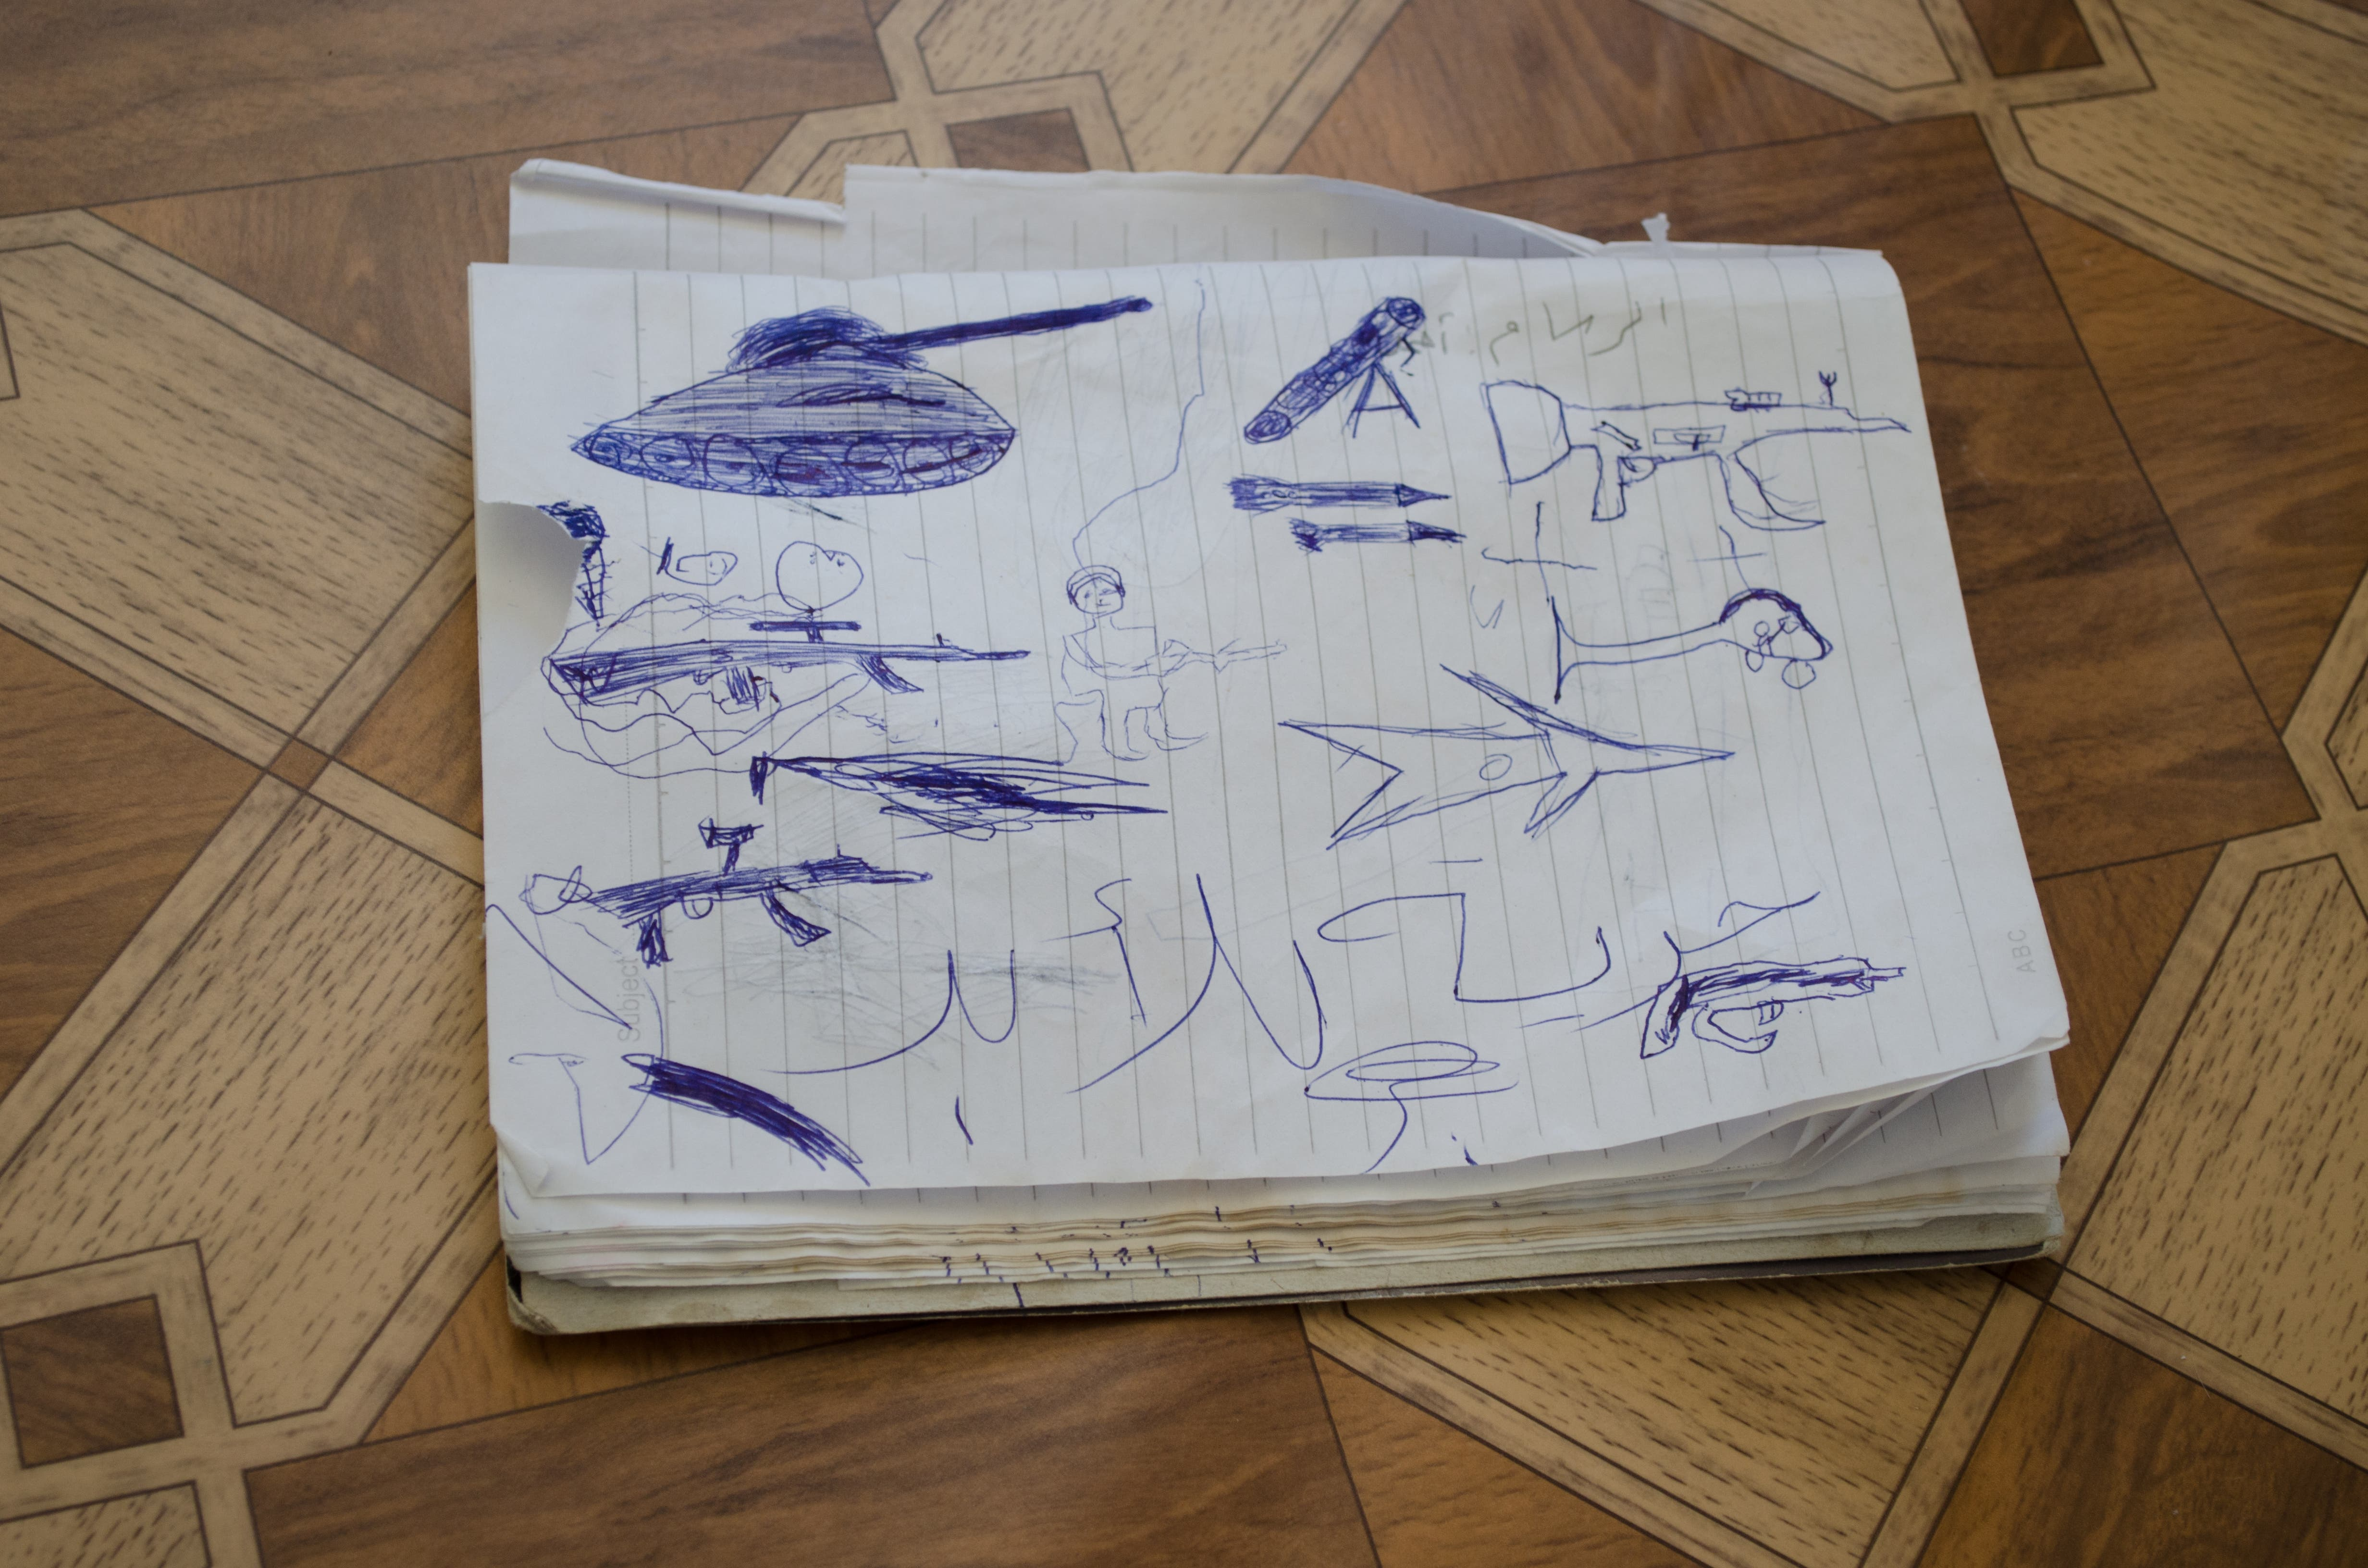 Soldiers, helicopters, tanks and rifles fill the notebook of five-year-old Ahmad al-Lubad. (Albawaba/J. Zach Hollo)